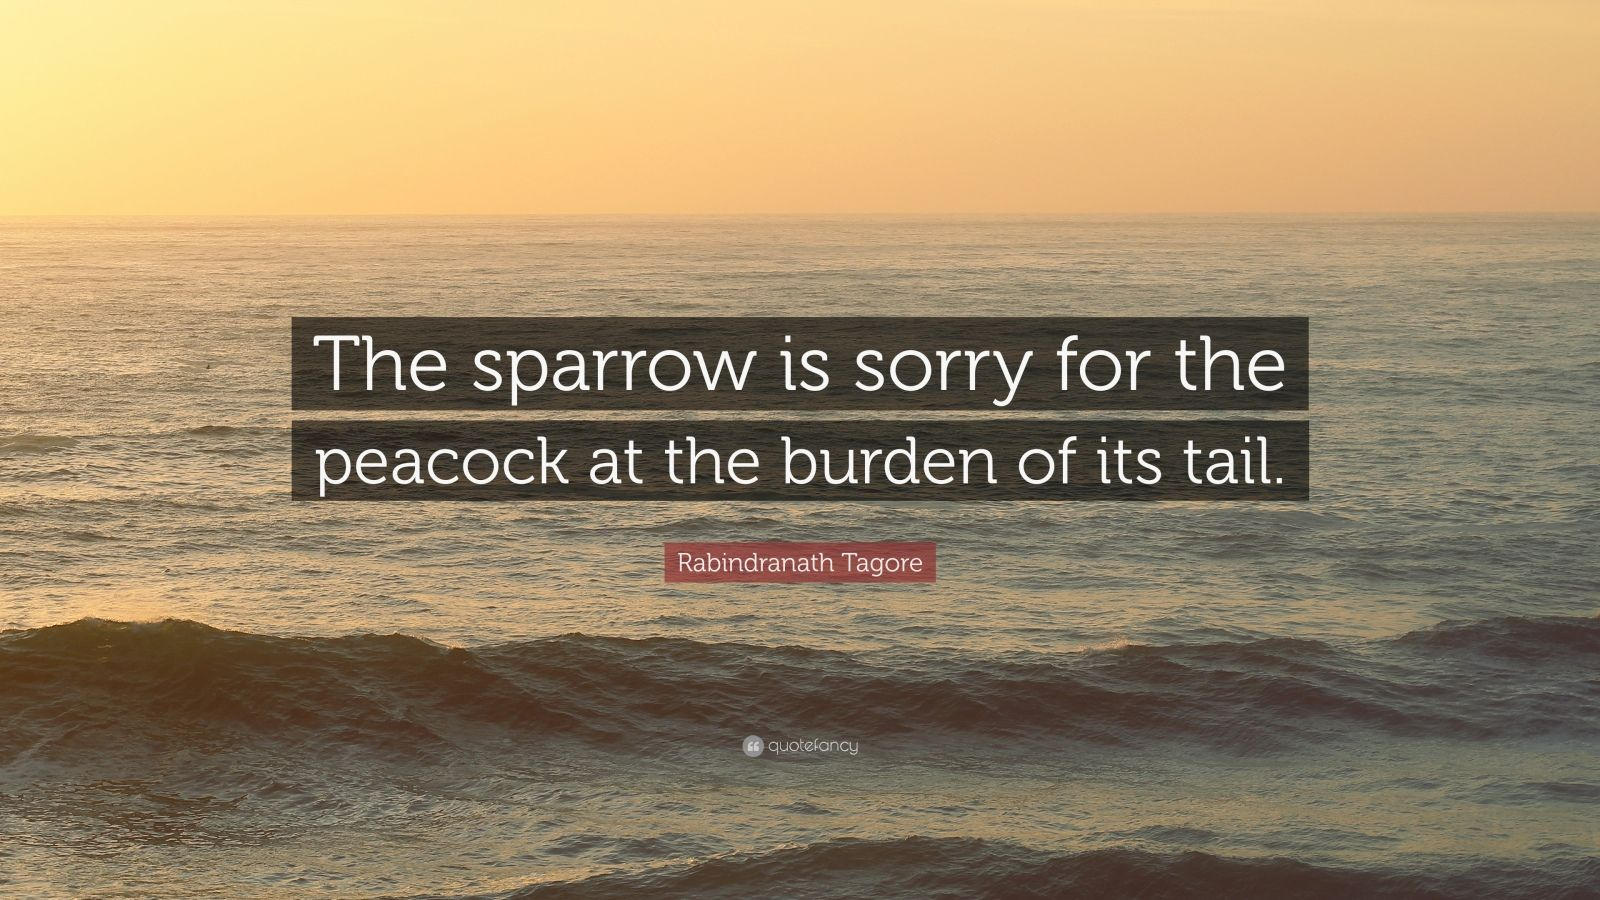 """Rabindranath Tagore Quote: """"The sparrow is sorry for the peacock at the burden of its tail."""""""